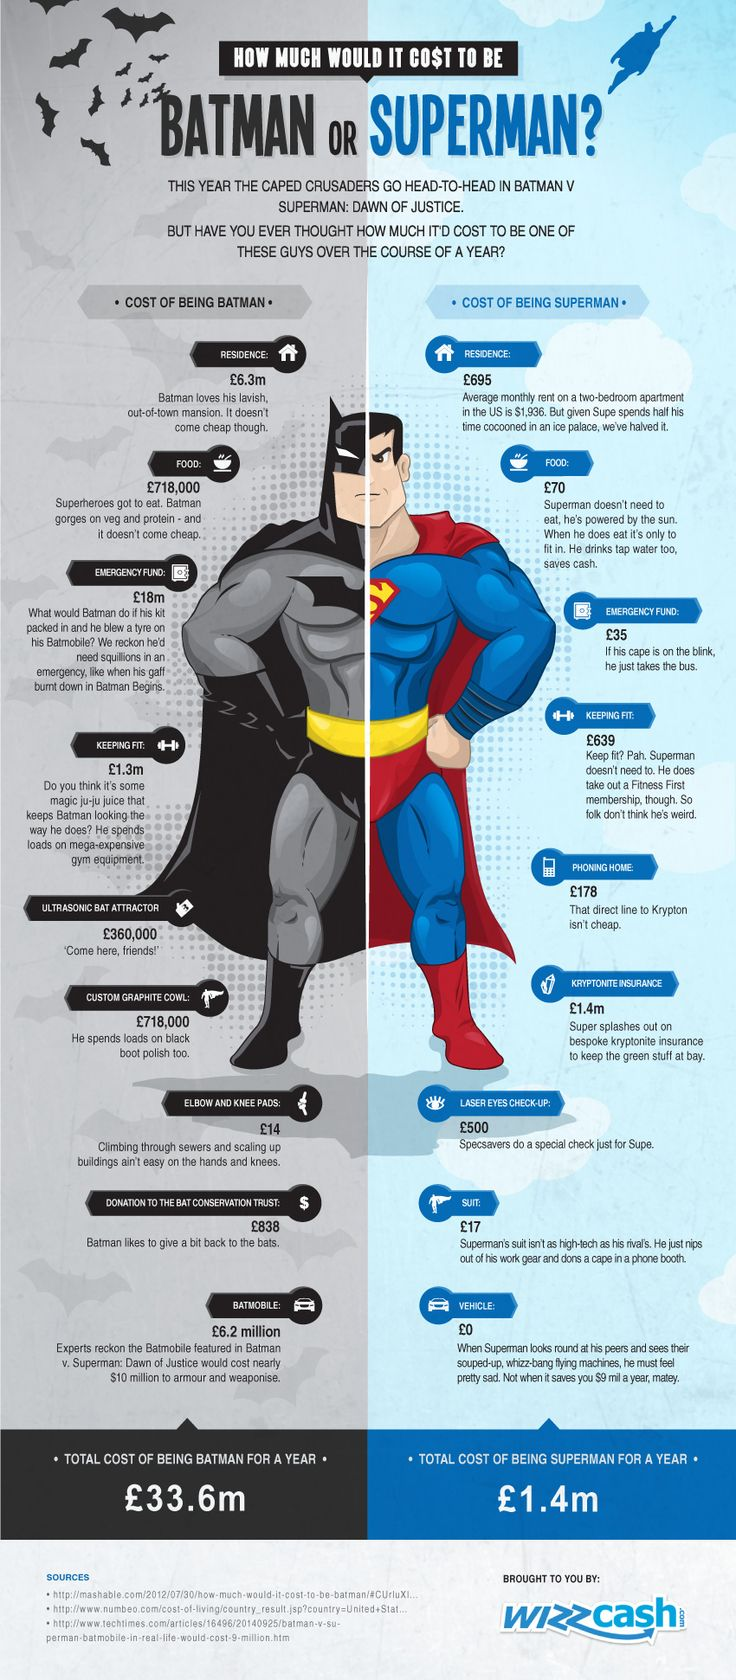 How Much Would It Cost To Be Batman or Superman?